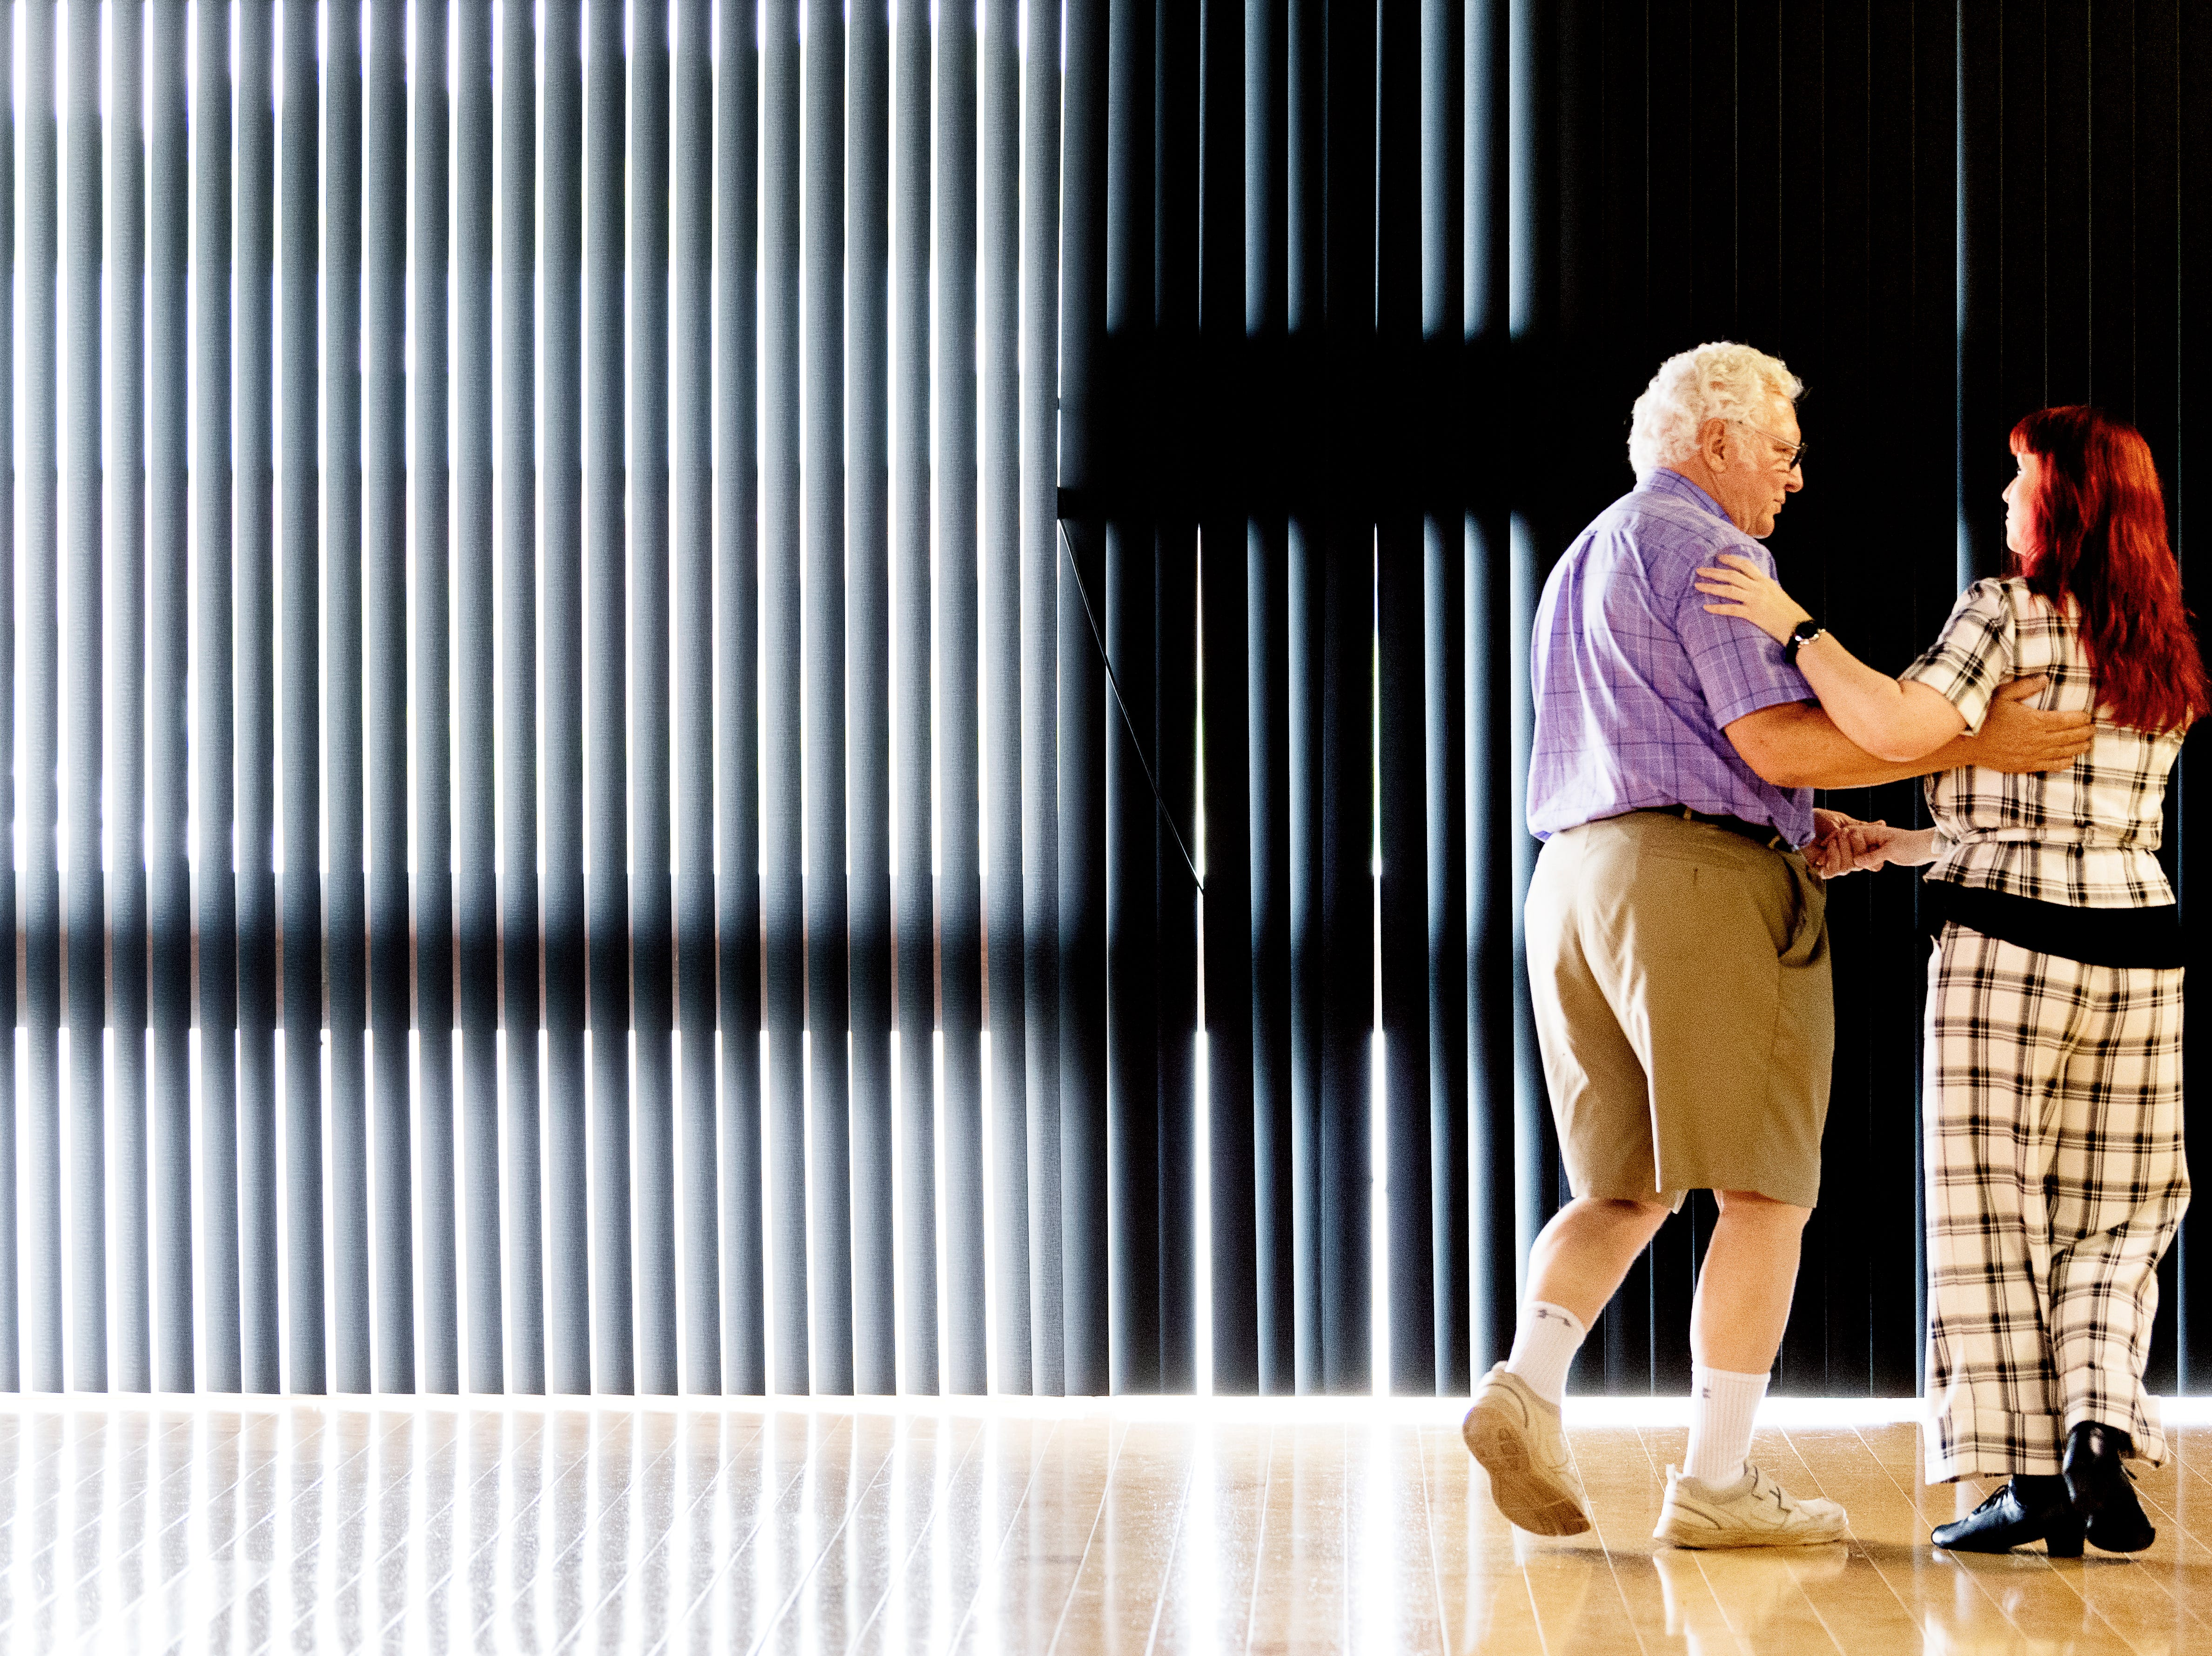 Tony Woodward, of Farragut, dances with his instructor Beth Cofer at Let's Dance Ballroom Dance Studio in Maryville, Tennessee on Thursday, May 9, 2019. Woodward, who lost his wife last year, has been taking dance lessons to stay busy, and, should he meet someone new, have the skills to dance with them, he said.